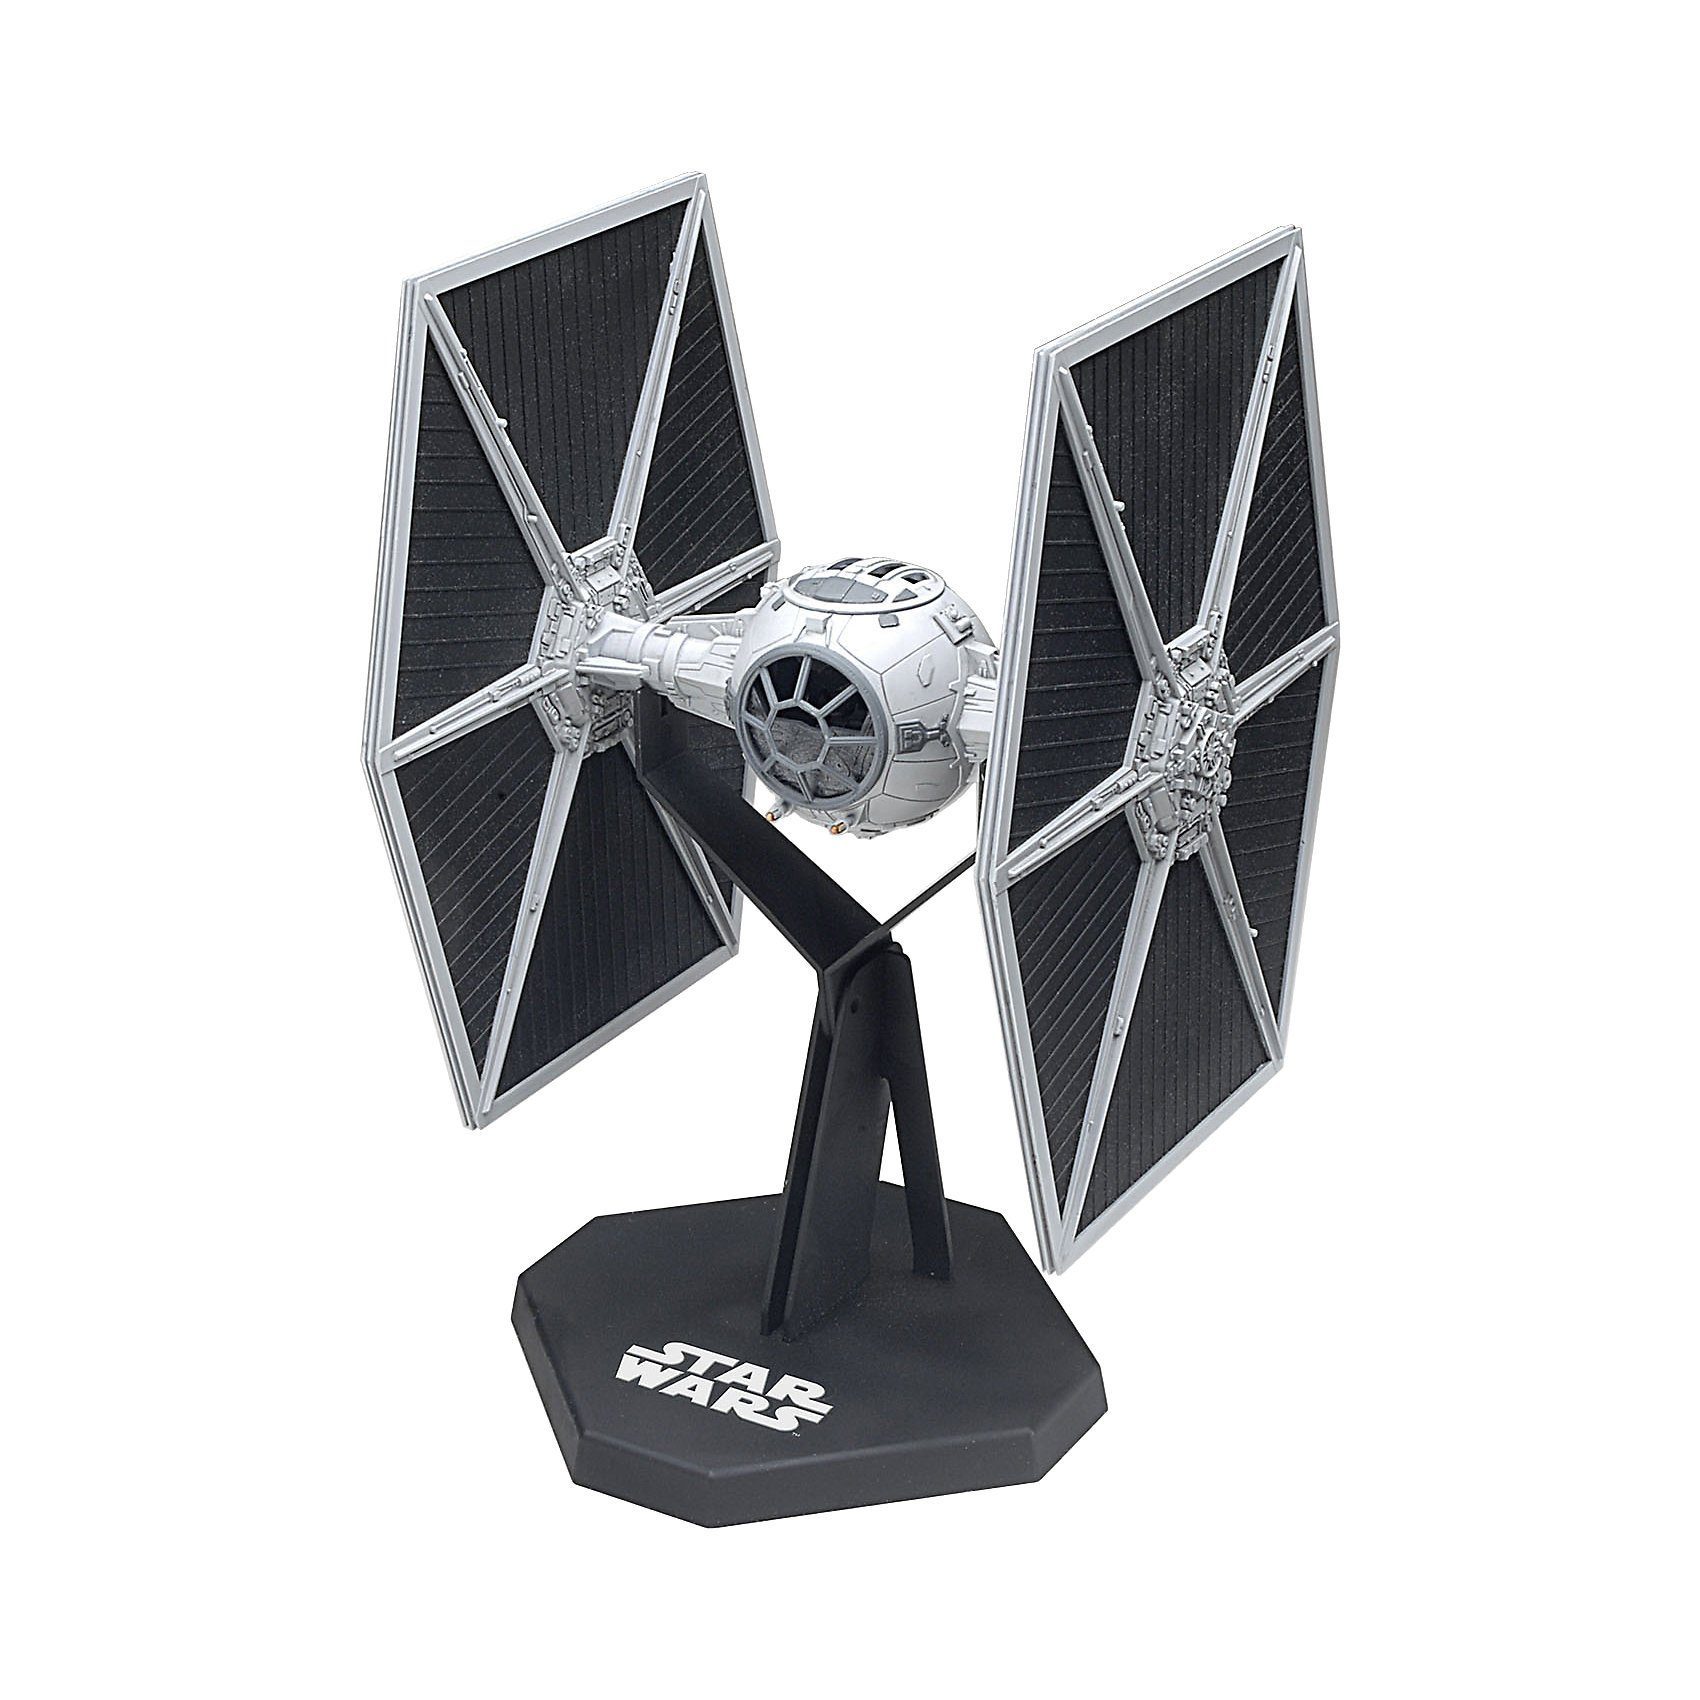 Revell Modellbausatz - Star Wars TIE Fighter